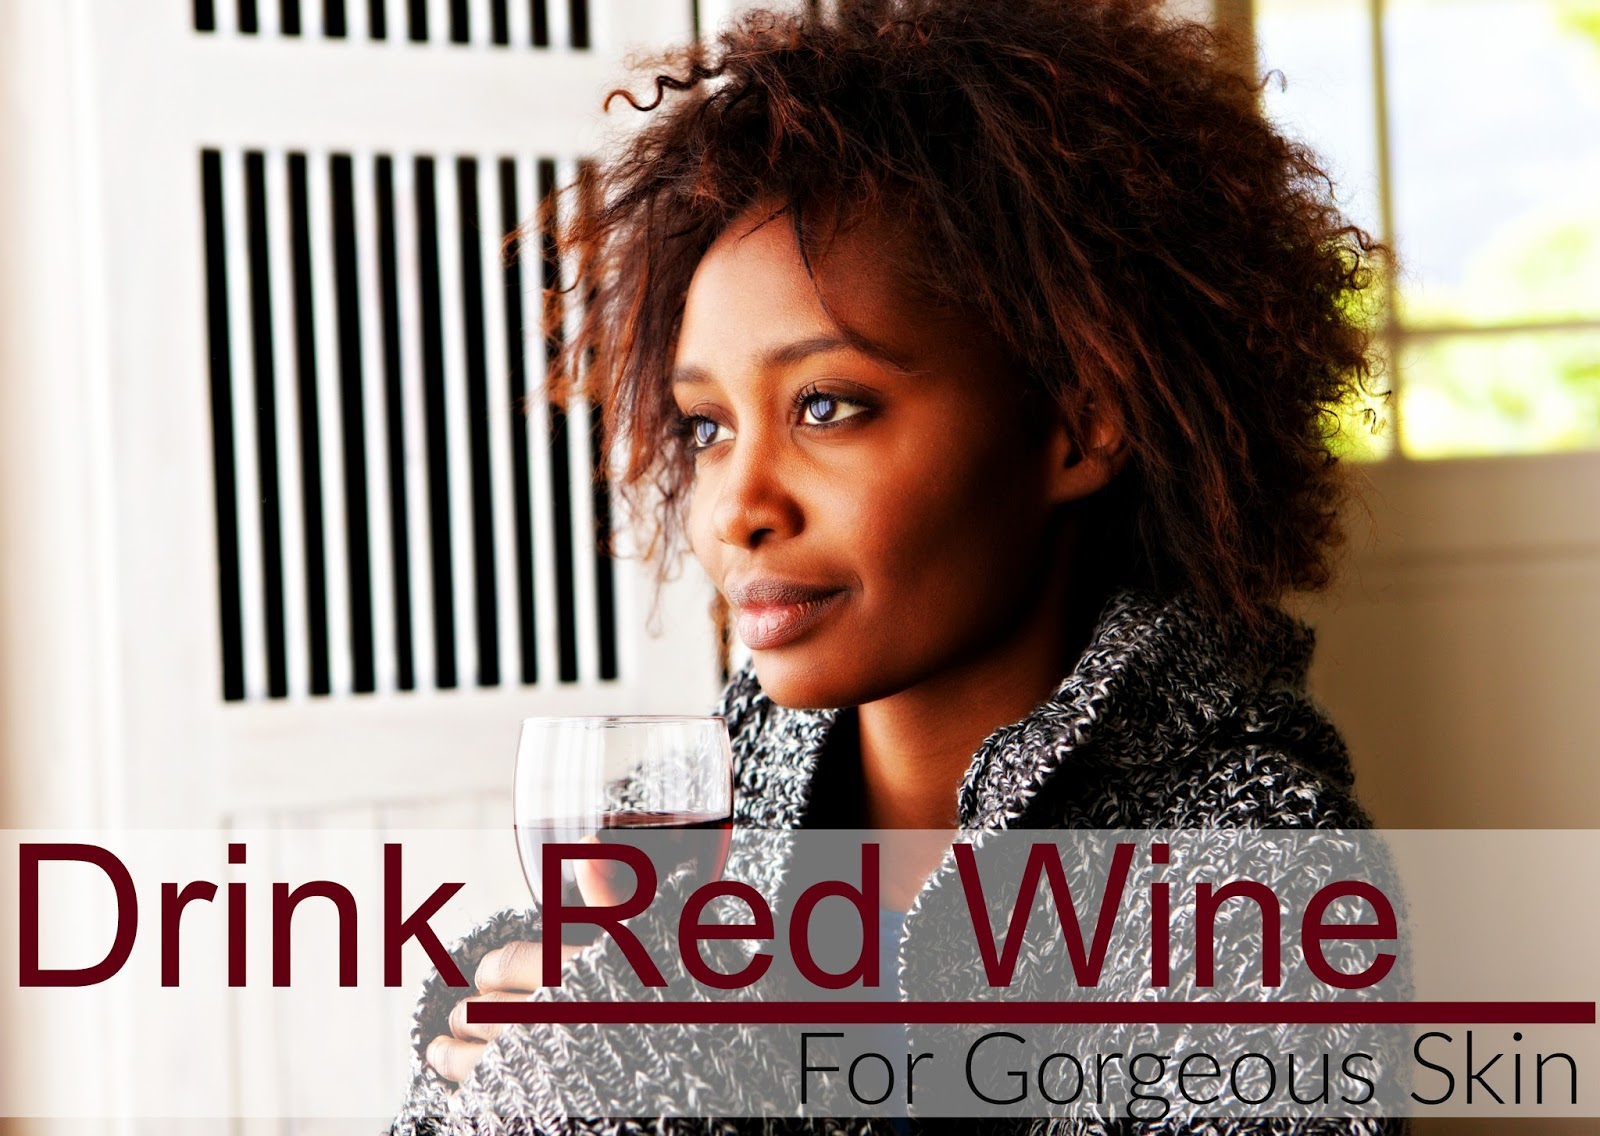 Red wine is great for more than to unwind at the end of the night or for your heart. Red wine can aid in getting you beautiful skin!